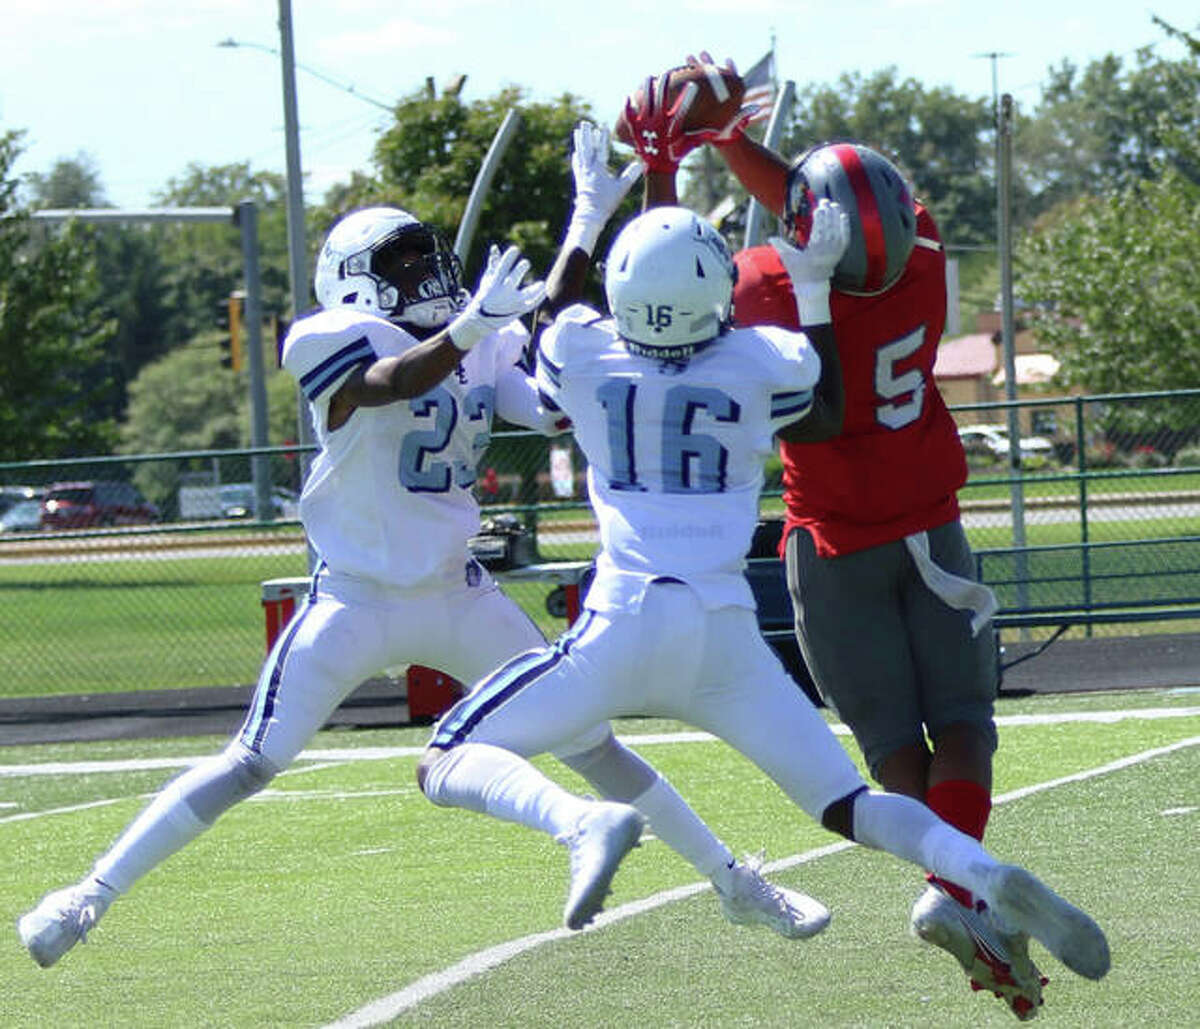 Alton's Keith Gilchrese (5) goes up to catch a long pass above Belleville East defenders Sonny McGill (16) and Javion Mobley Jackson (23) during East's win in last Saturday's Southwestern Conference game in Belleville. The 1-4 Redbirds are back on the road Friday night at Edwardsville.